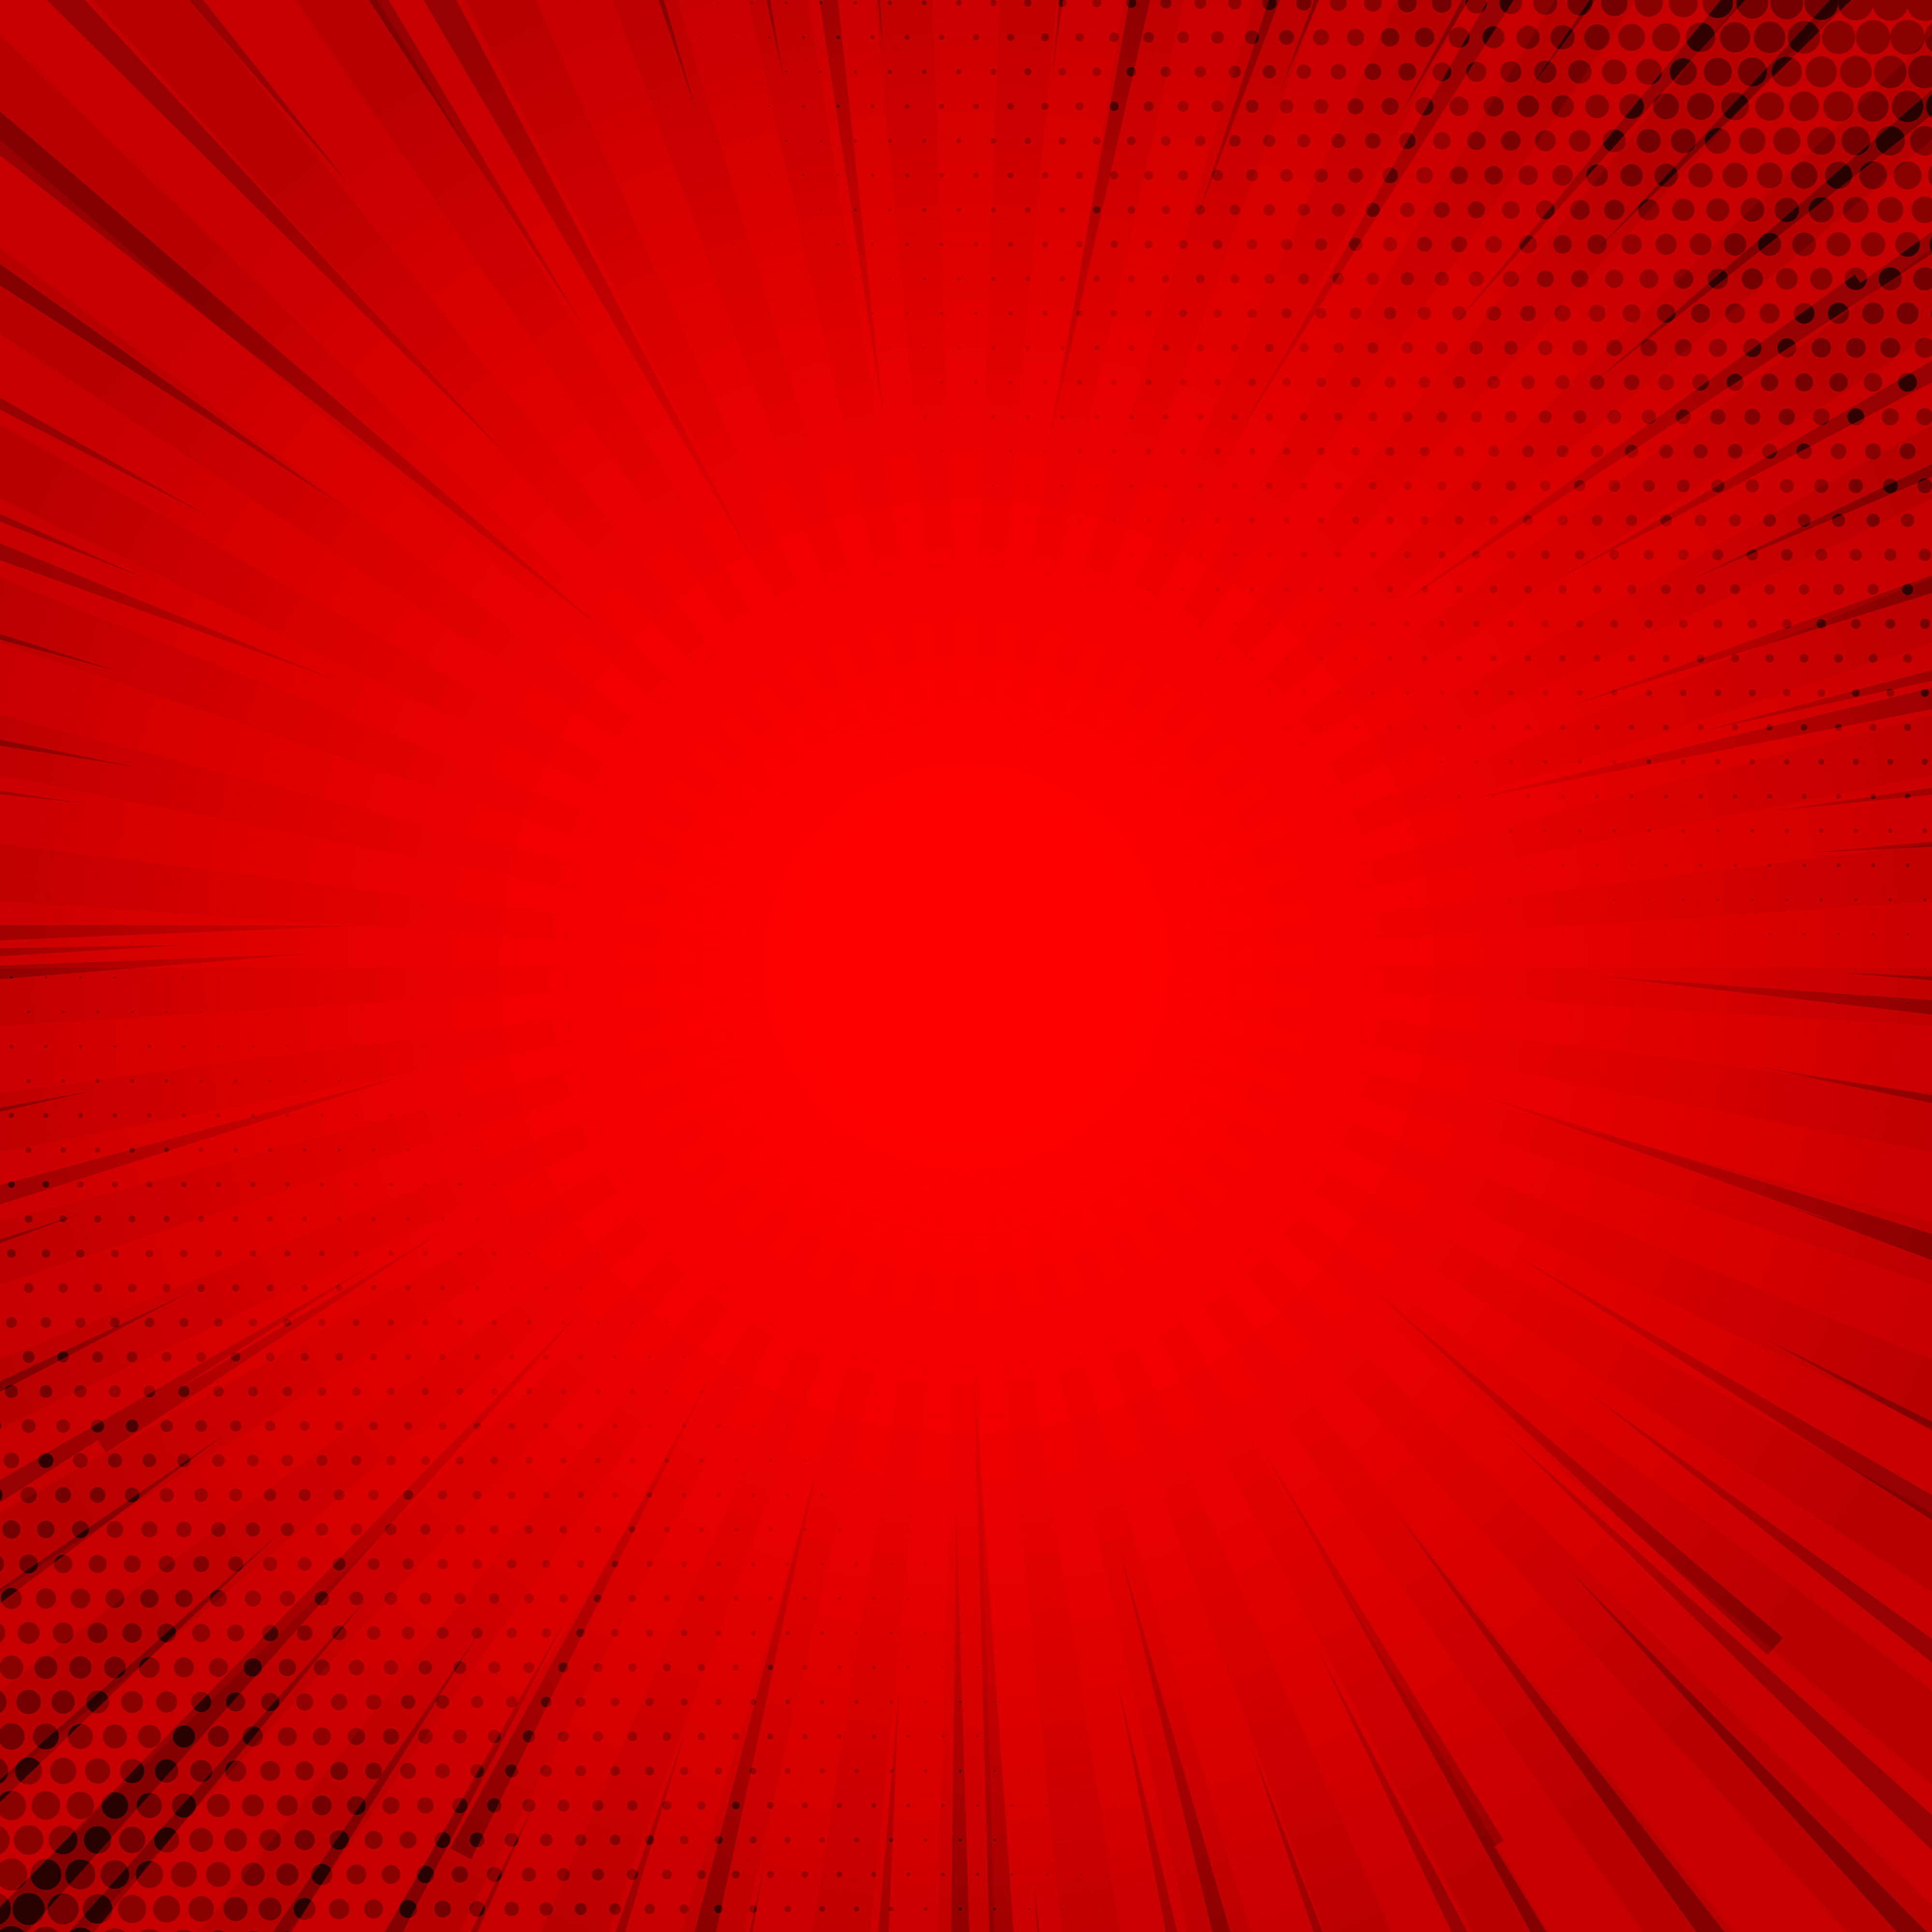 retro red comic background halftone with rays download